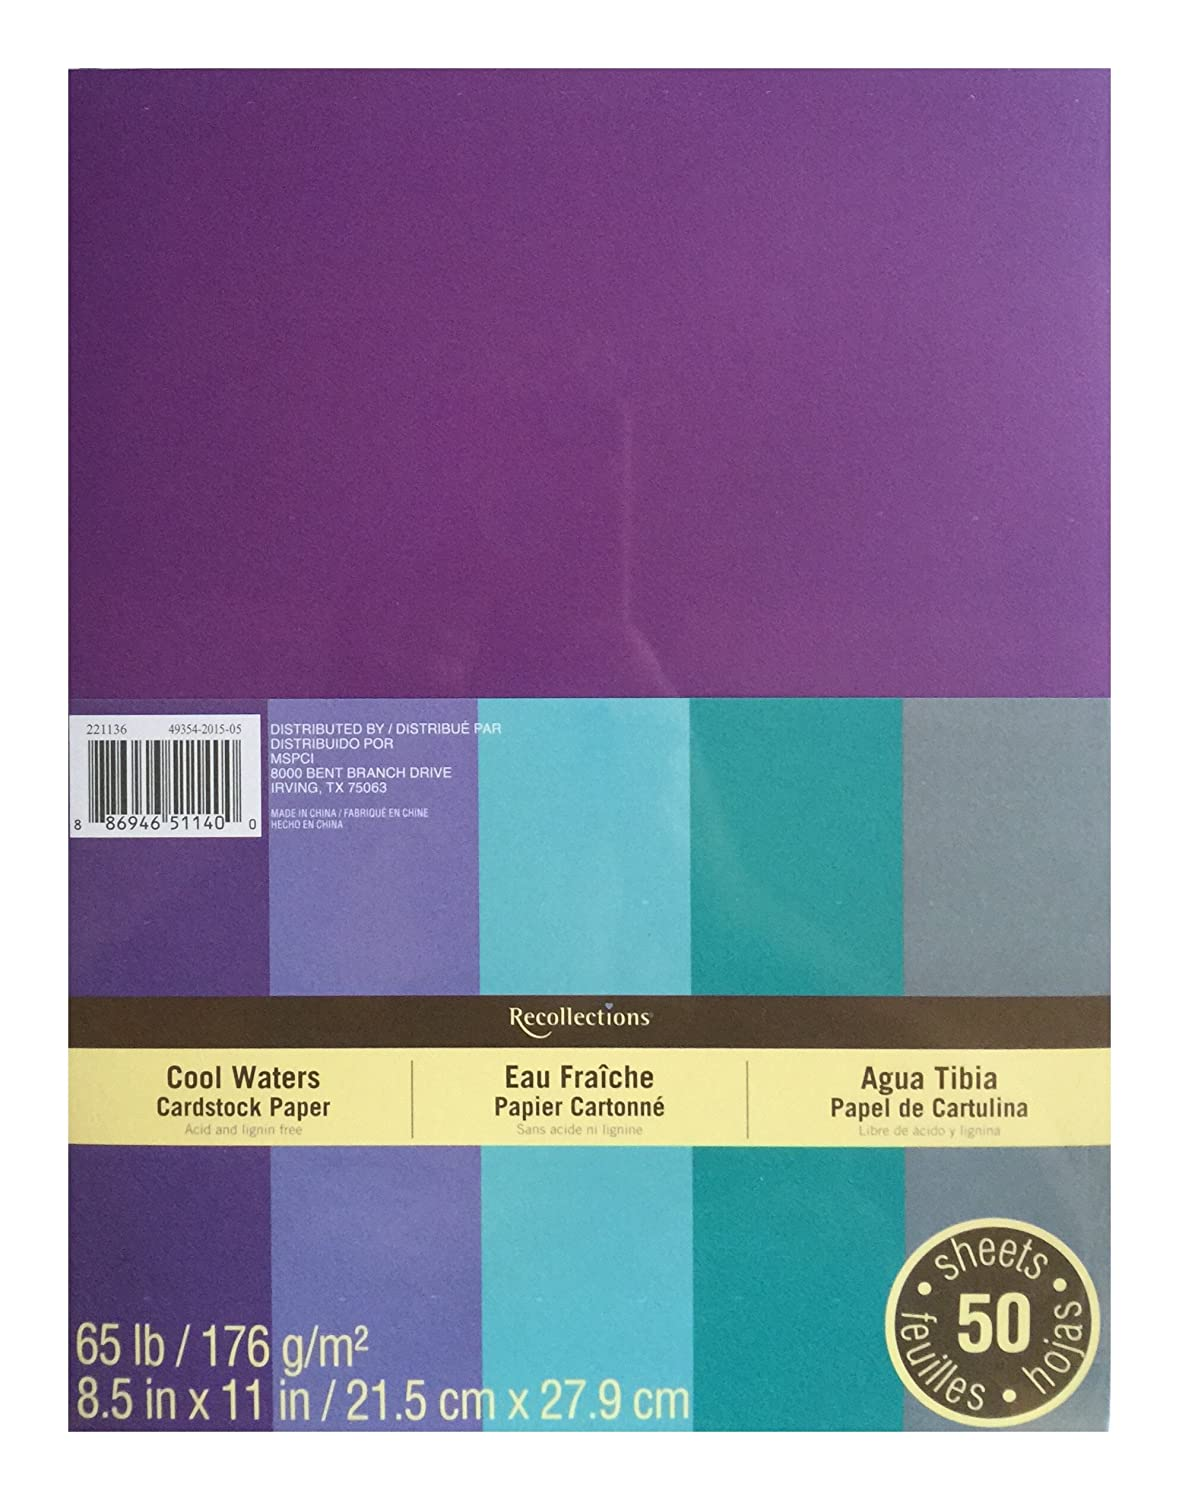 Recollections Cardstock Paper, Blue, 8 1/2 x 11 Cool Waters